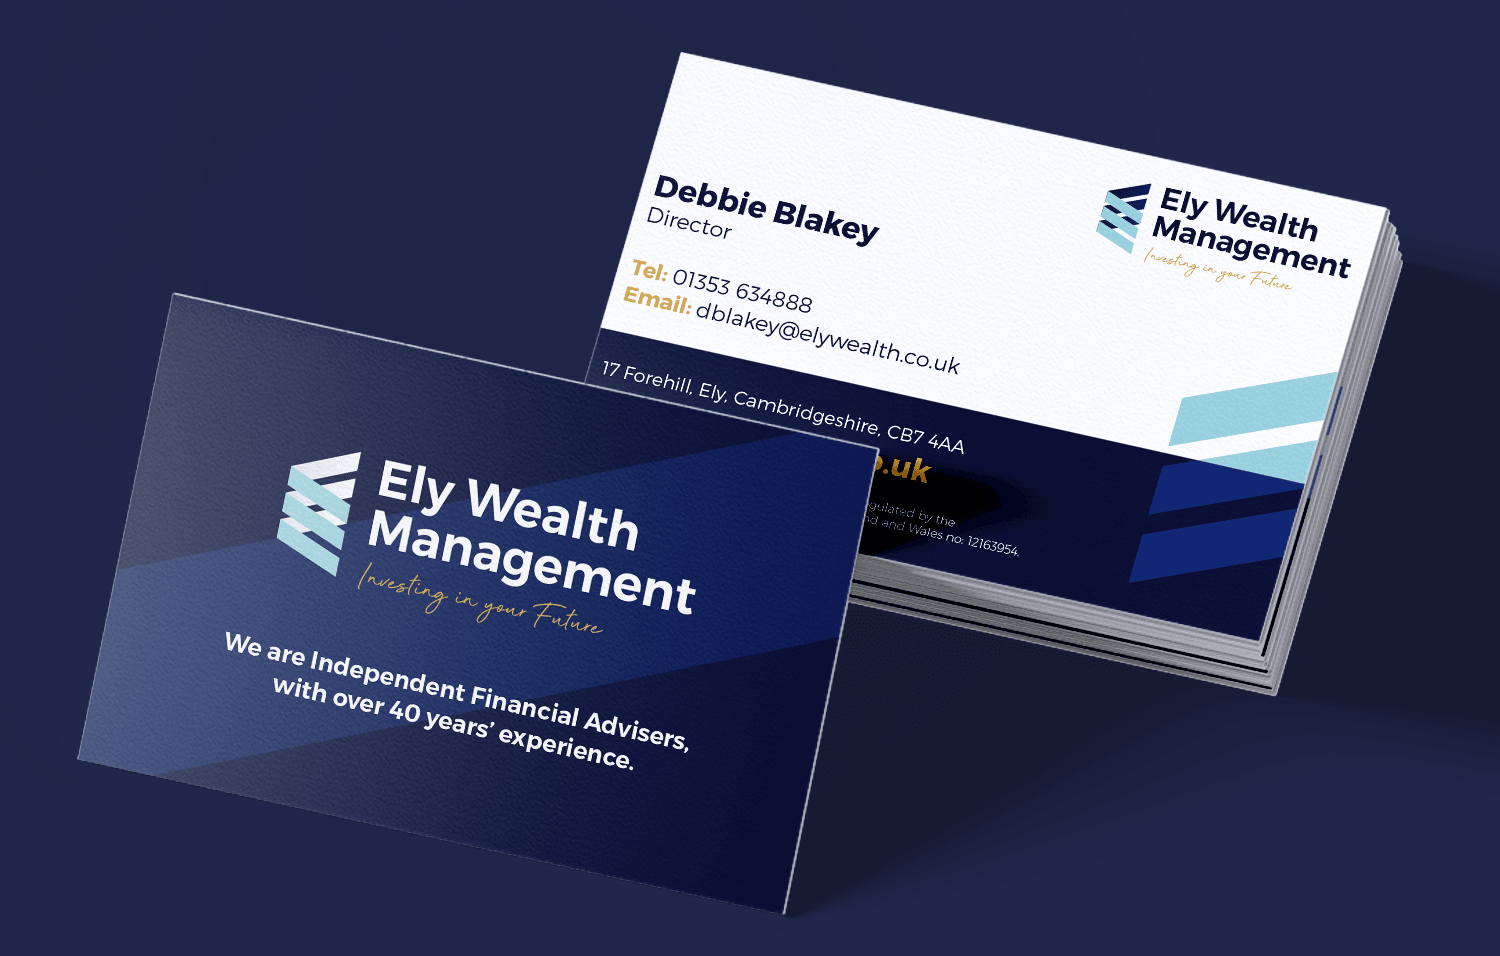 Ely Wealth management business cards